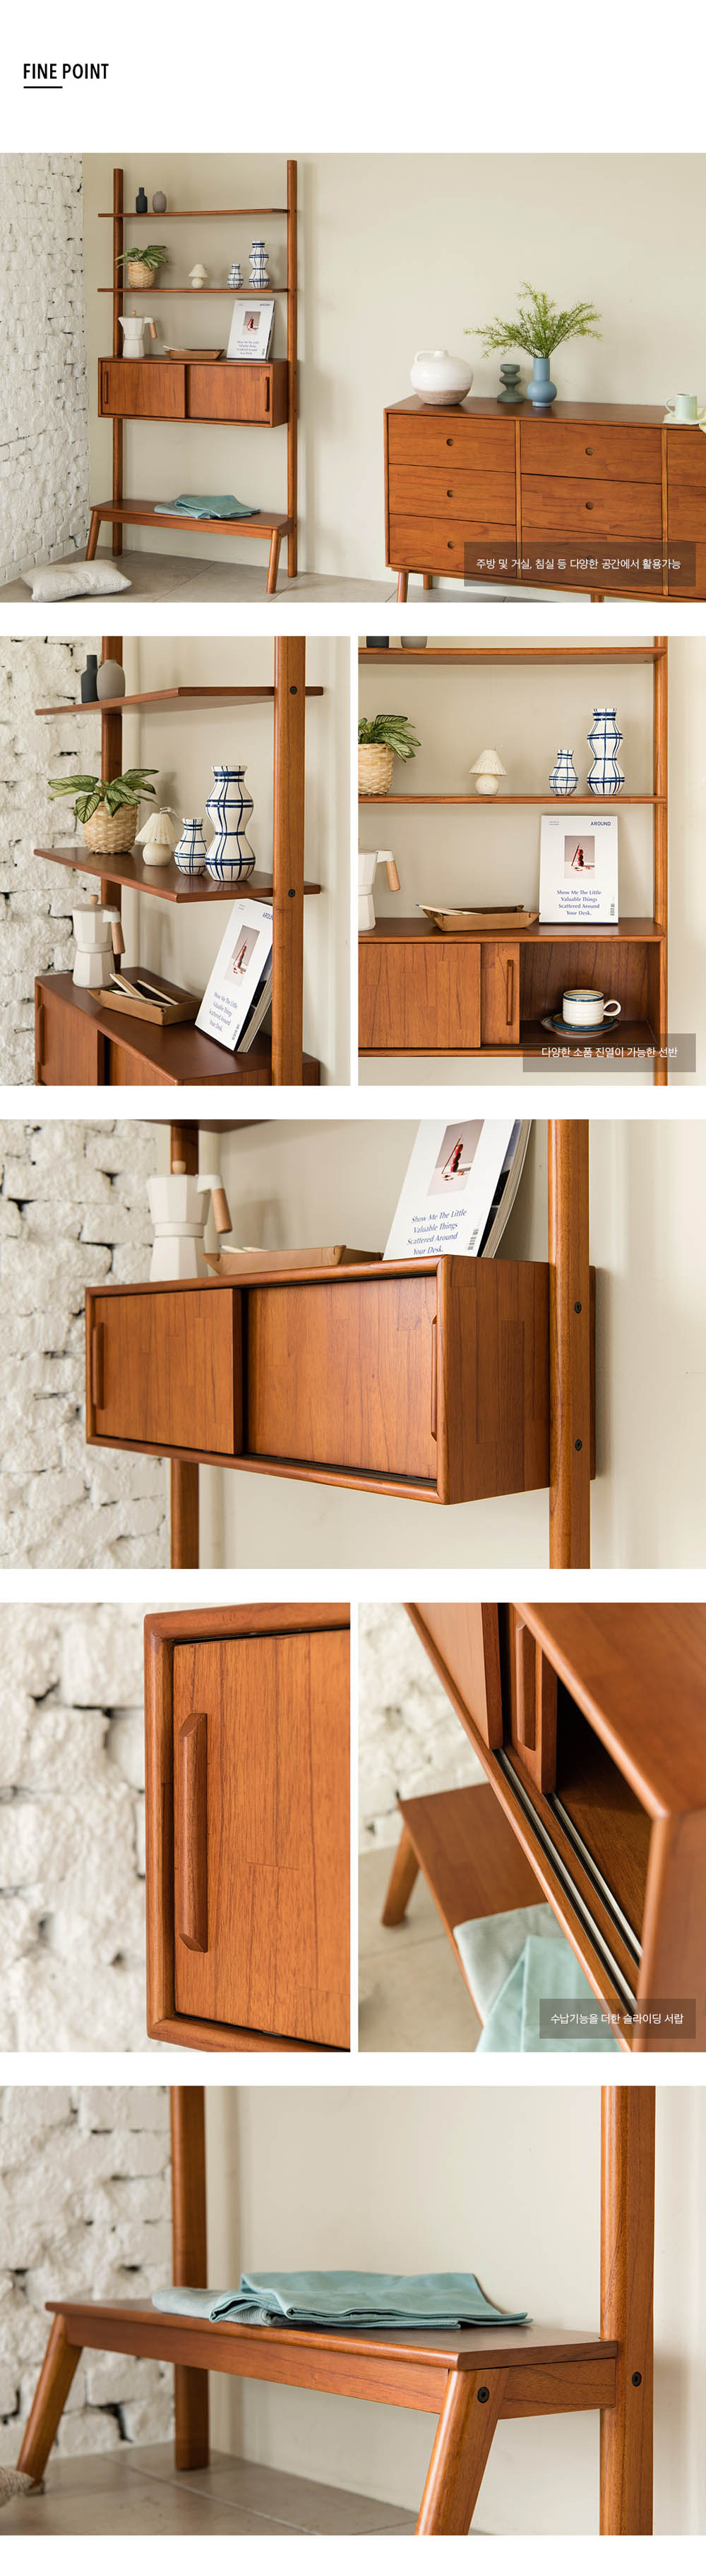 Continew_Antique_Multi_Purpose_Tall_Shelf_finepoints_specs_by_born_in_colour